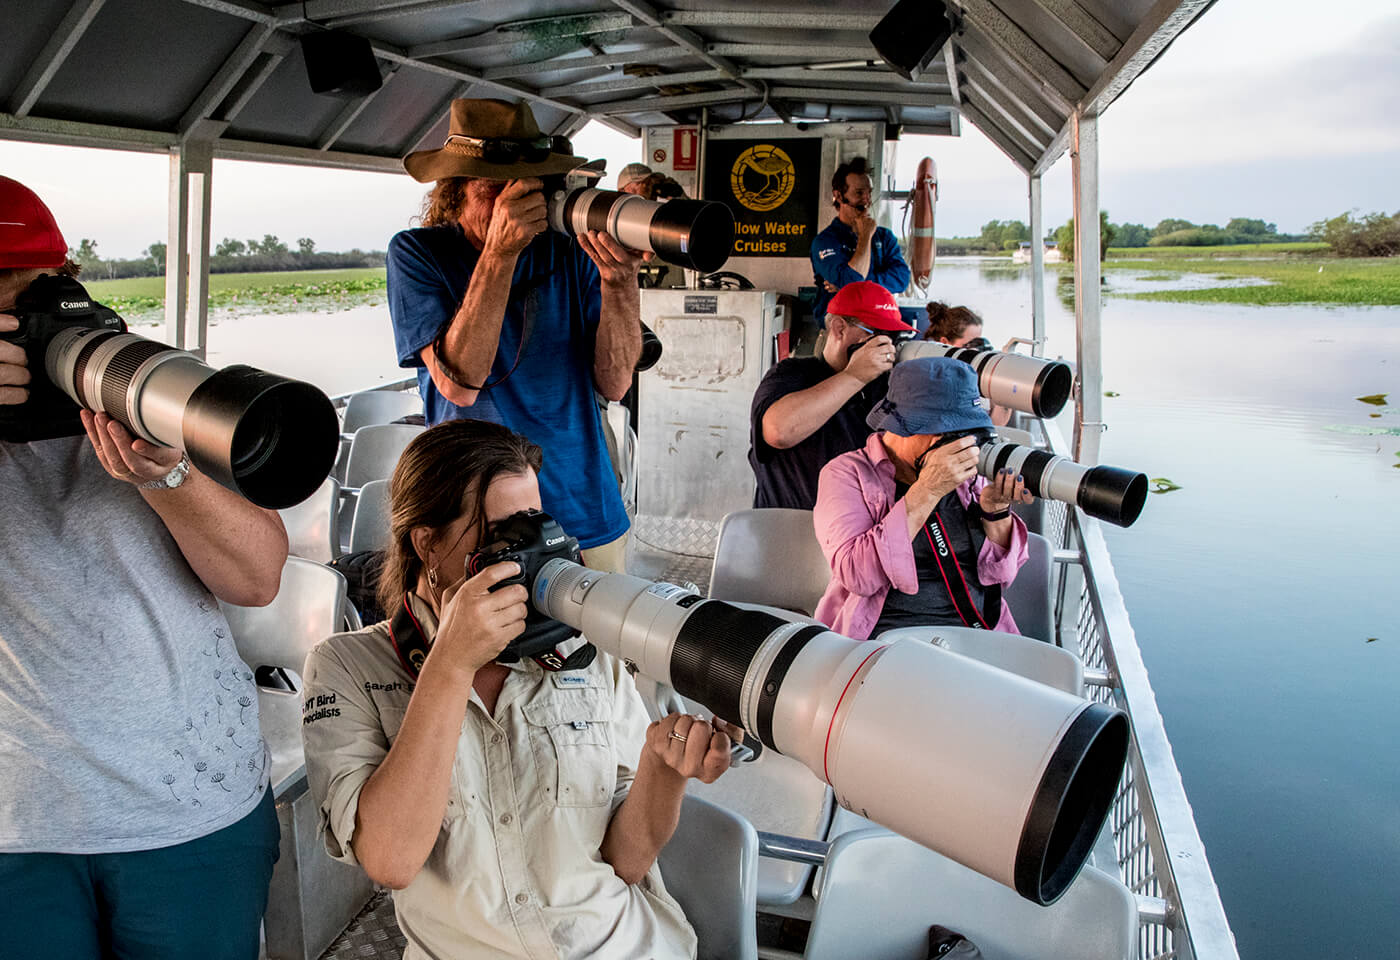 Photographing wildlife image by Jay Collier